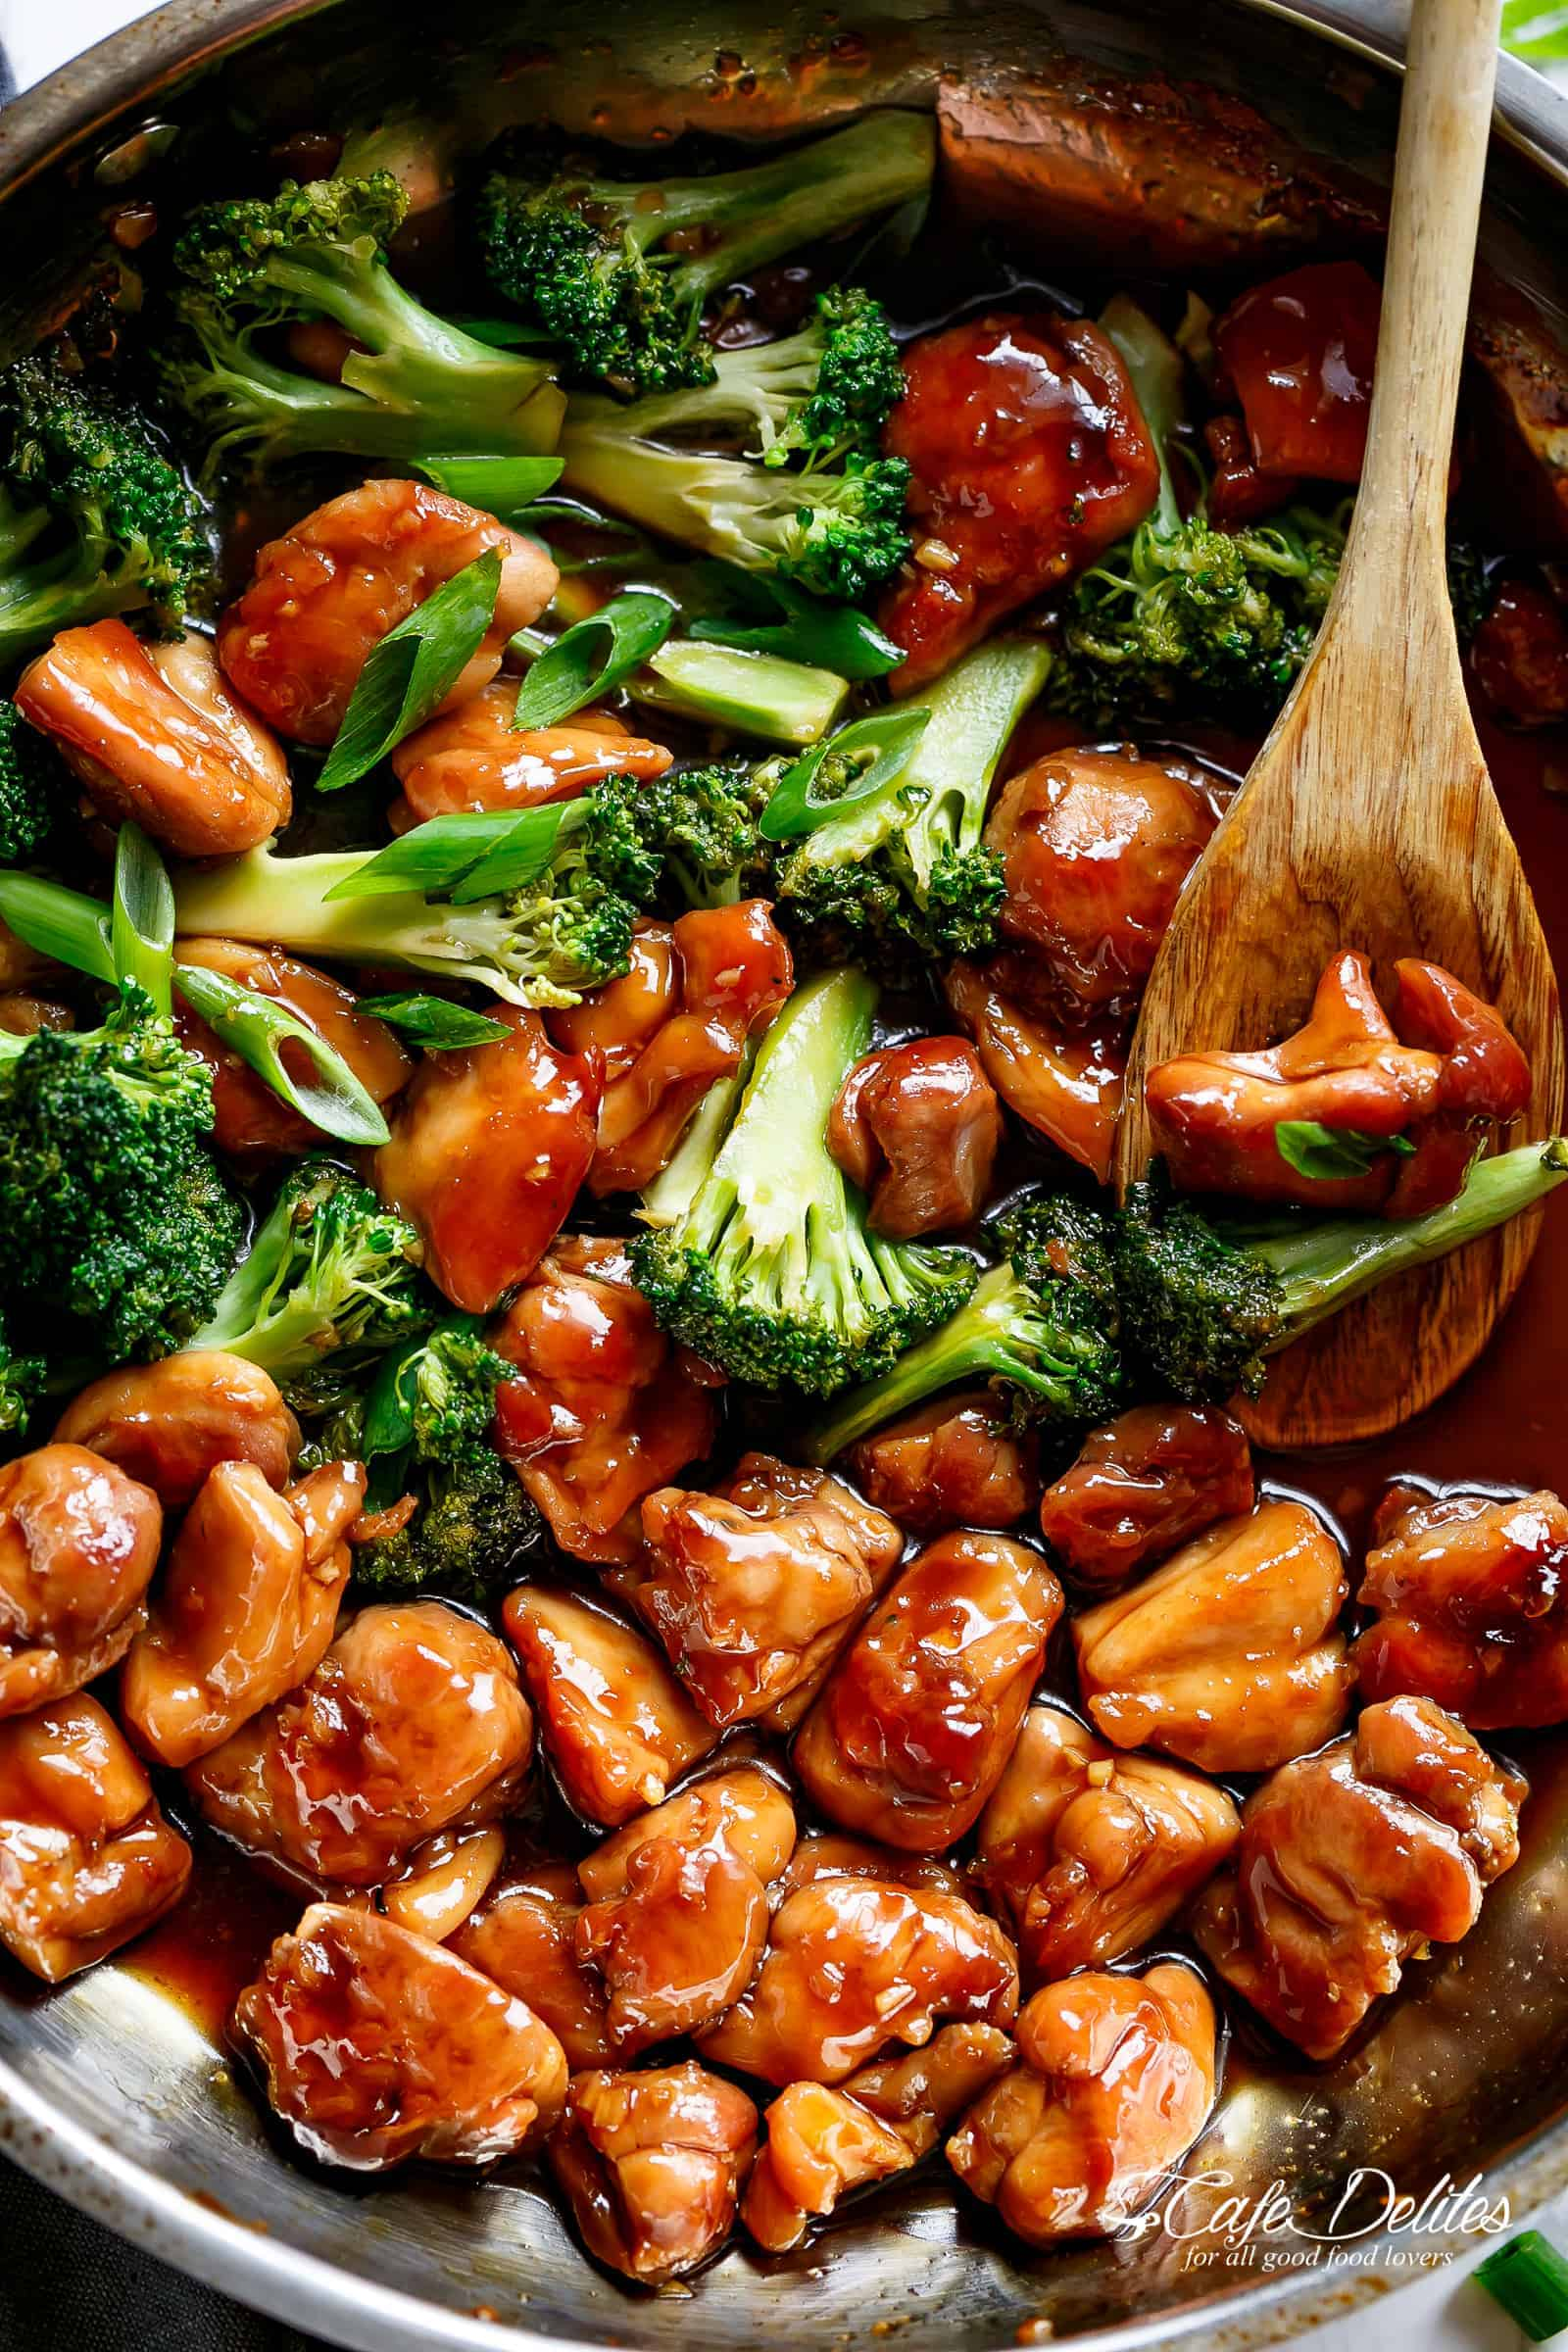 Teriyaki Chicken with broccoli is a super easy chicken recipe cooked in 10-minutes with no marinading needed! Crispy and juicy skinless chicken thighs stir-fried and swimming in a beautiful flavoured homemade teriyaki sauce. | cafedelites.com